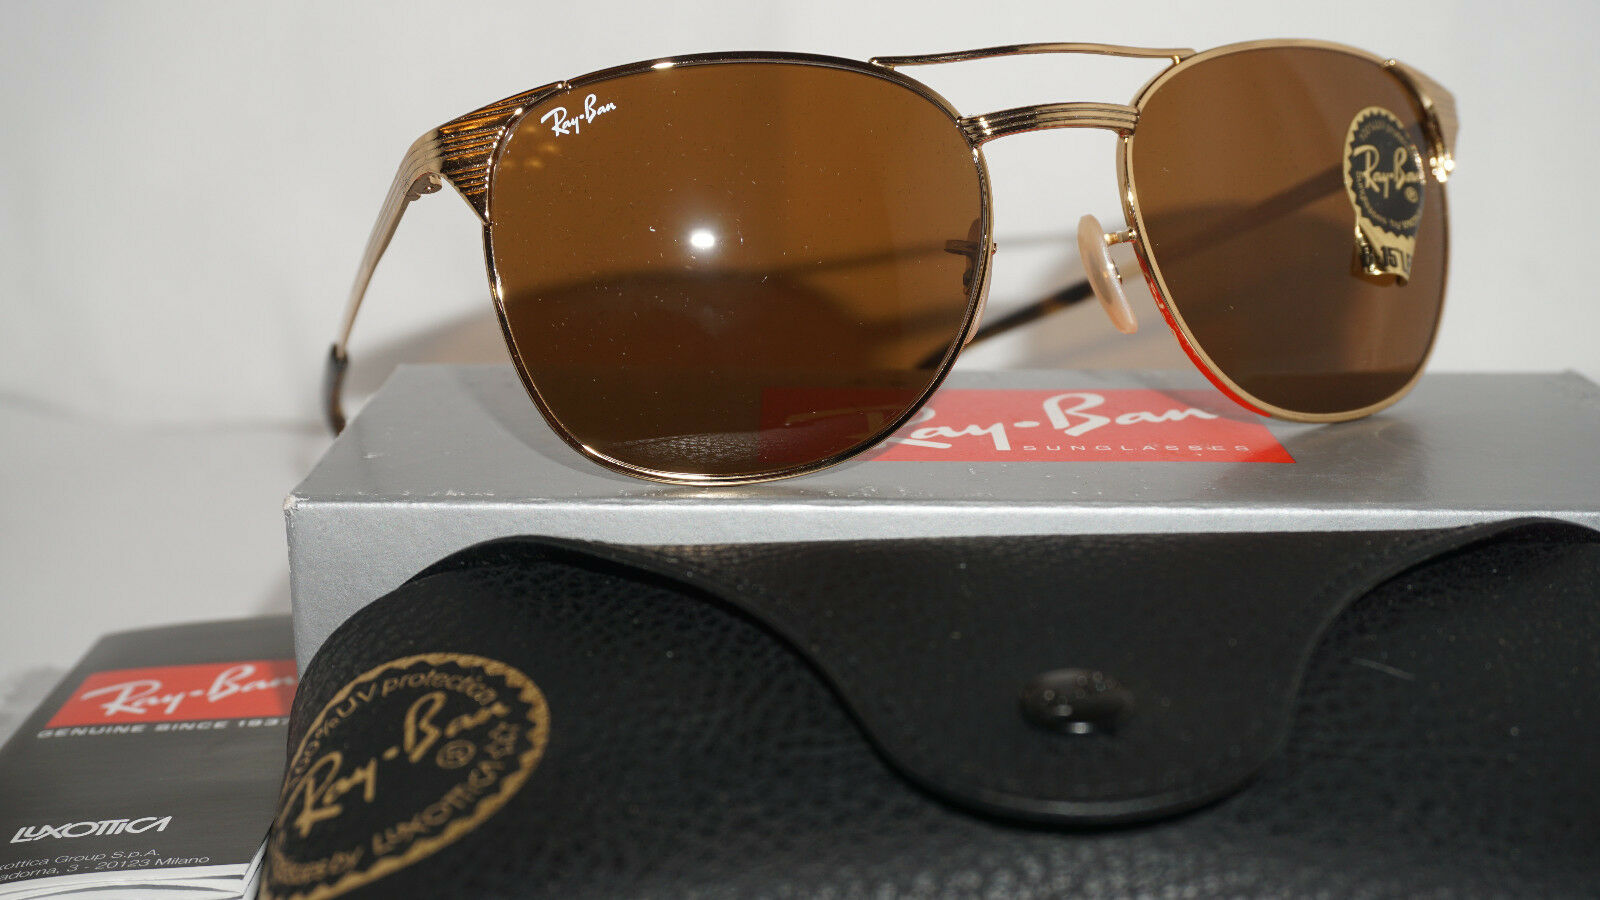 113d1b4469 ... EAN 8053672673654 product image for Ray Ban Sunglasses Signet Gold  Frame Rb 3429m 001 G- ...